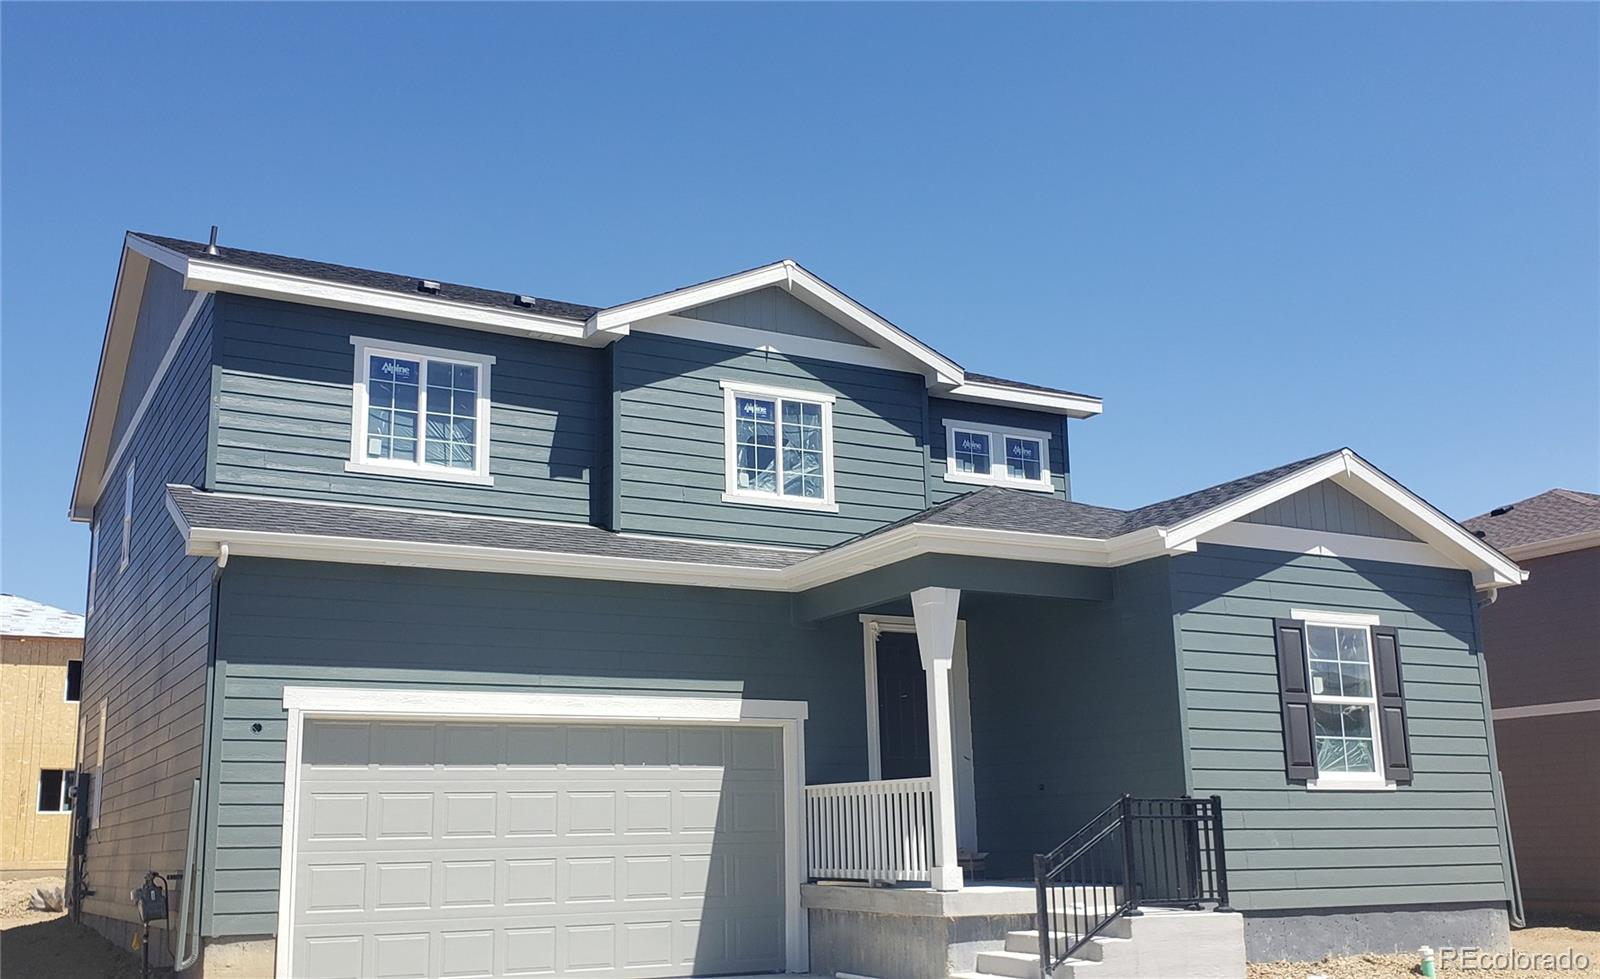 6815 E 118th Place Property Photo - Thornton, CO real estate listing